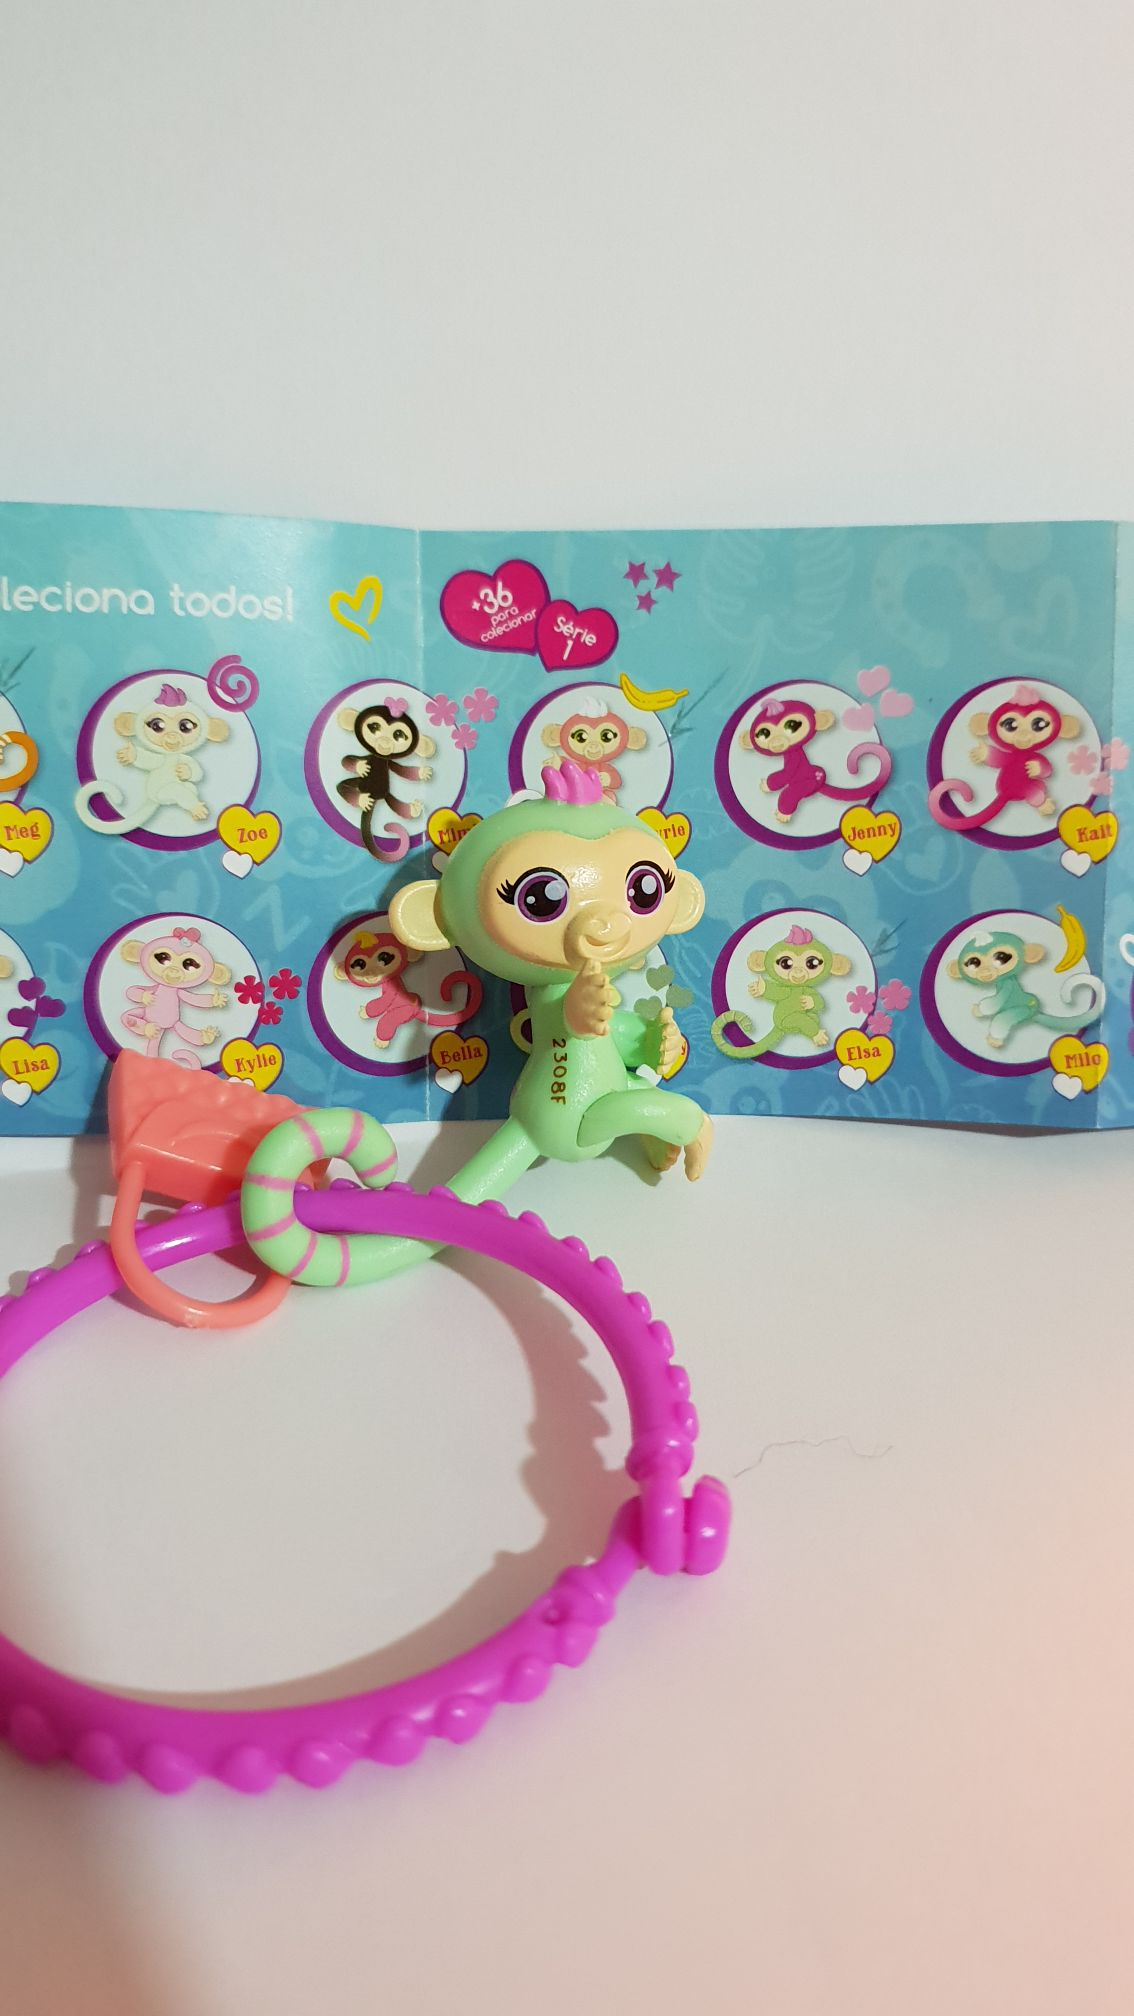 Fingerlings Minis # Elsa Doll And Barbie front image (front cover)